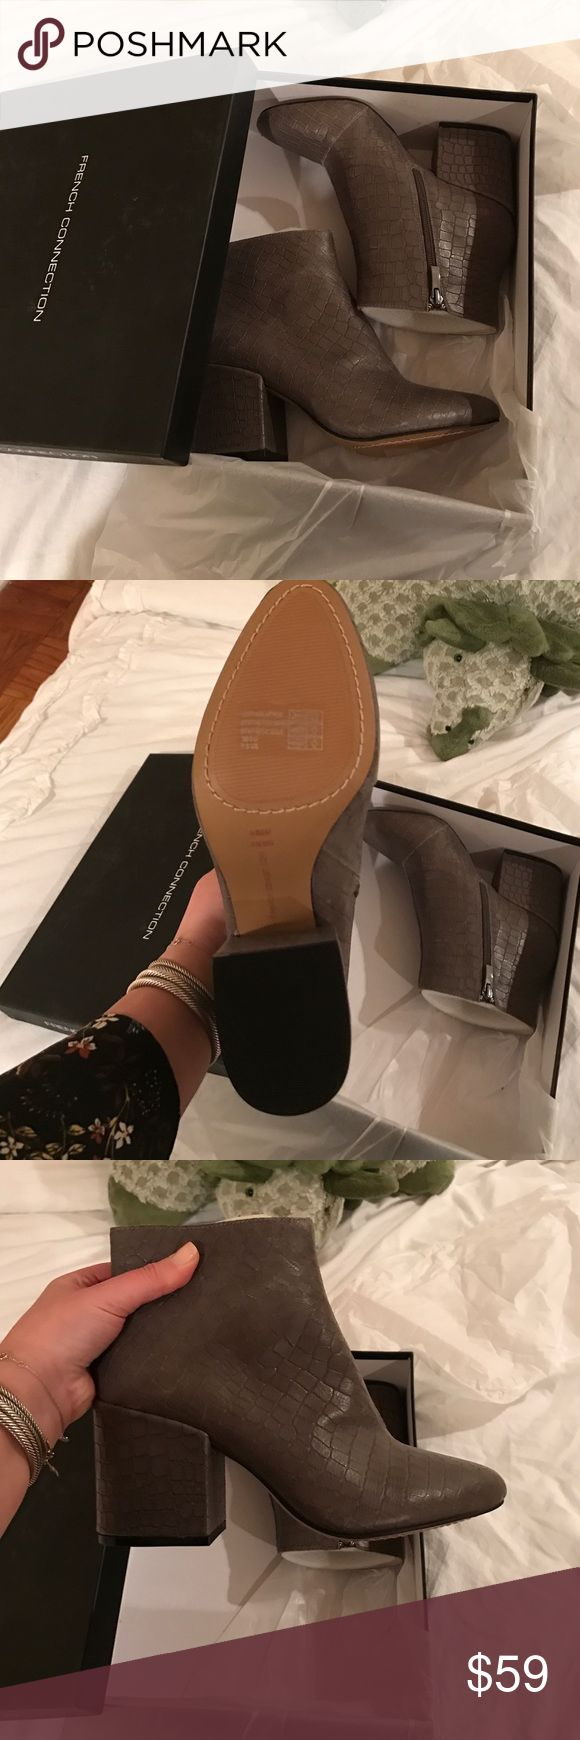 New in box French Connection Dilyla booties AMAZING BOOTIES! New in box! Perfect condition! French Connection Shoes Ankle Boots & Booties